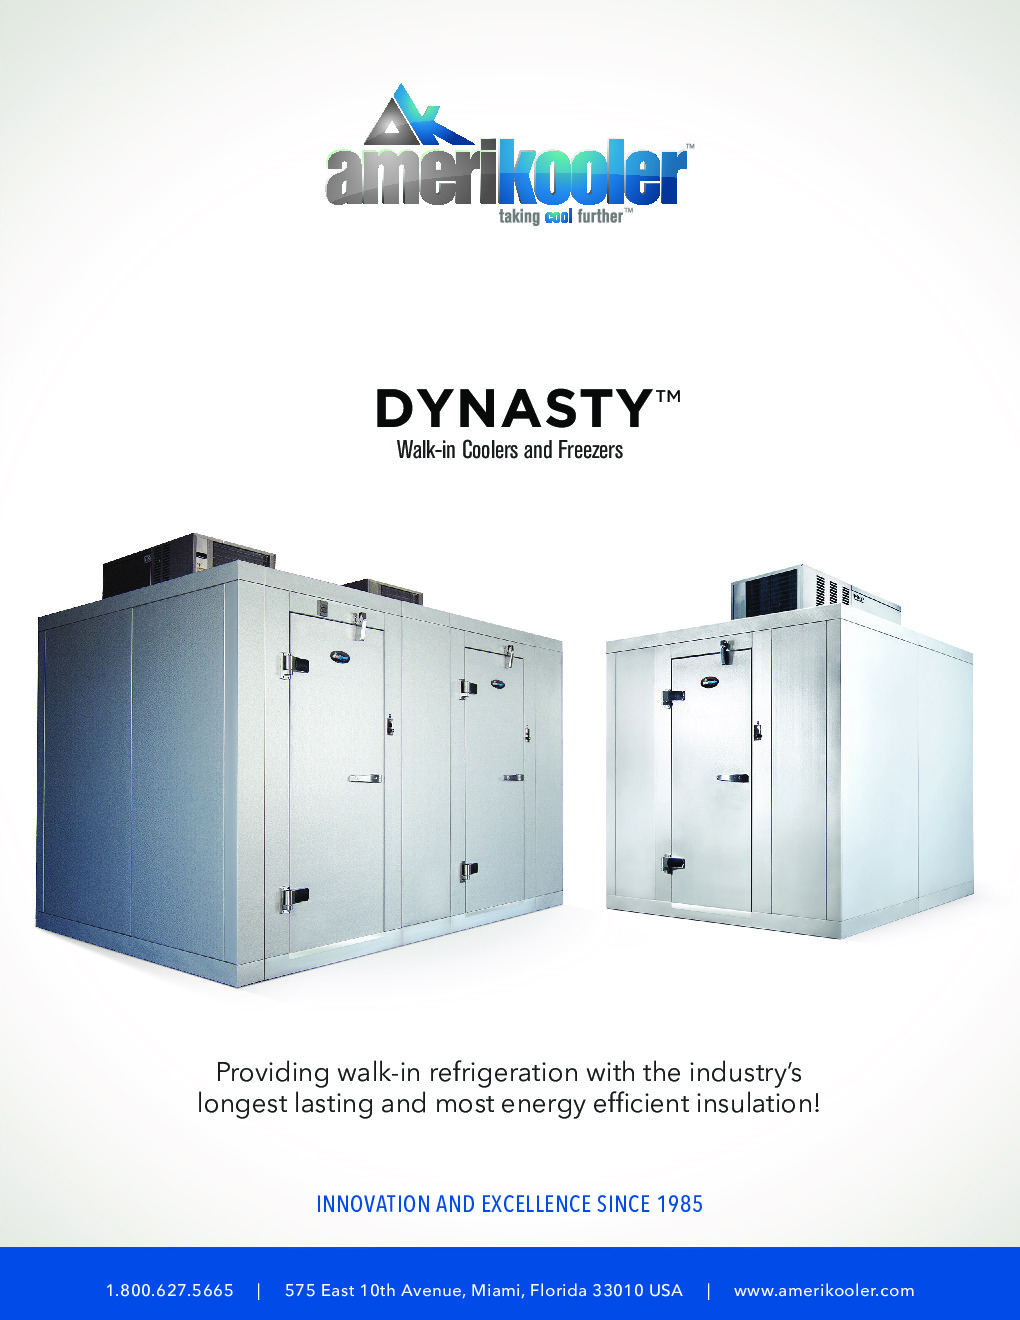 AmeriKooler DW071377N-4/9 Indoor 7' X 13' Walk-In, 9' L Cooler without Floor and 4' L Freezer, Box Only